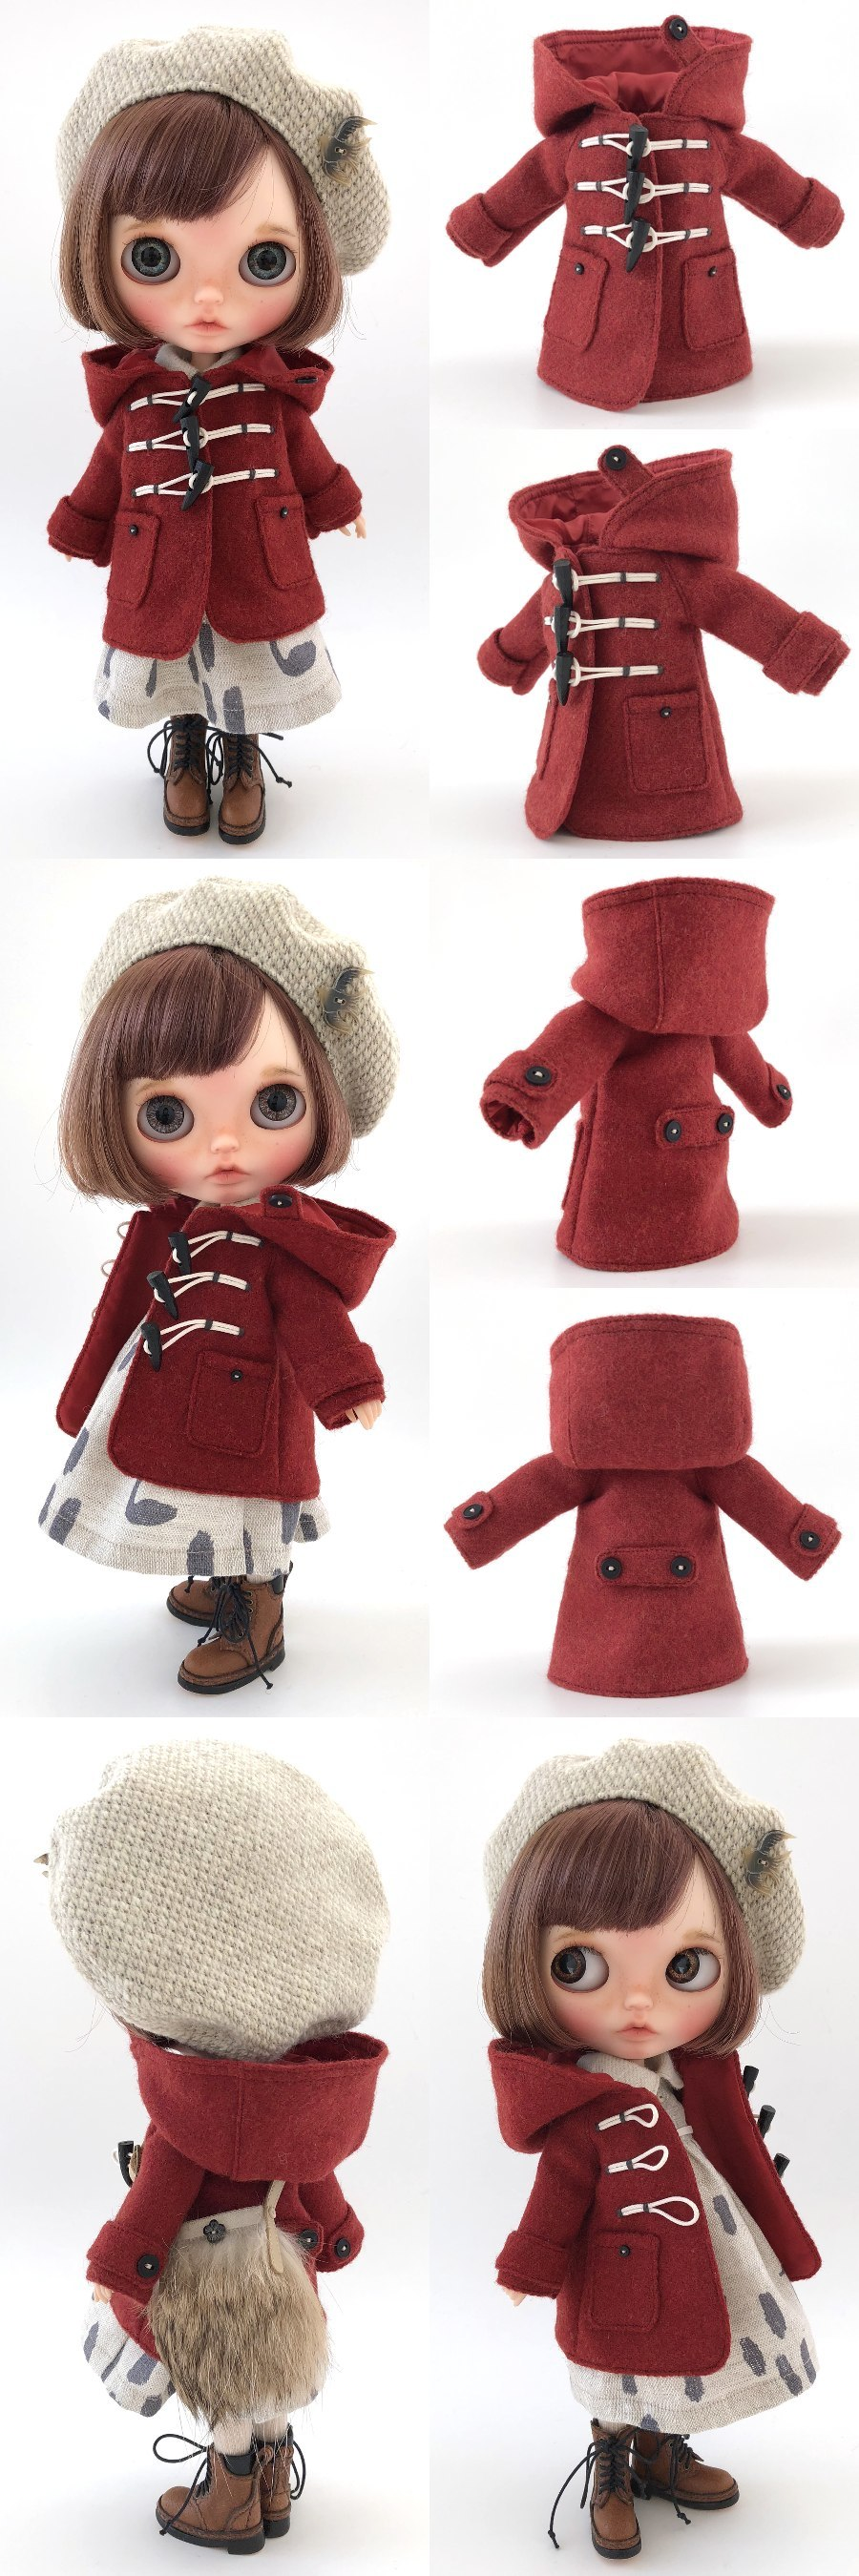 ** Blythe outfit ** Lucalily 580**_d0217189_18402602.jpg